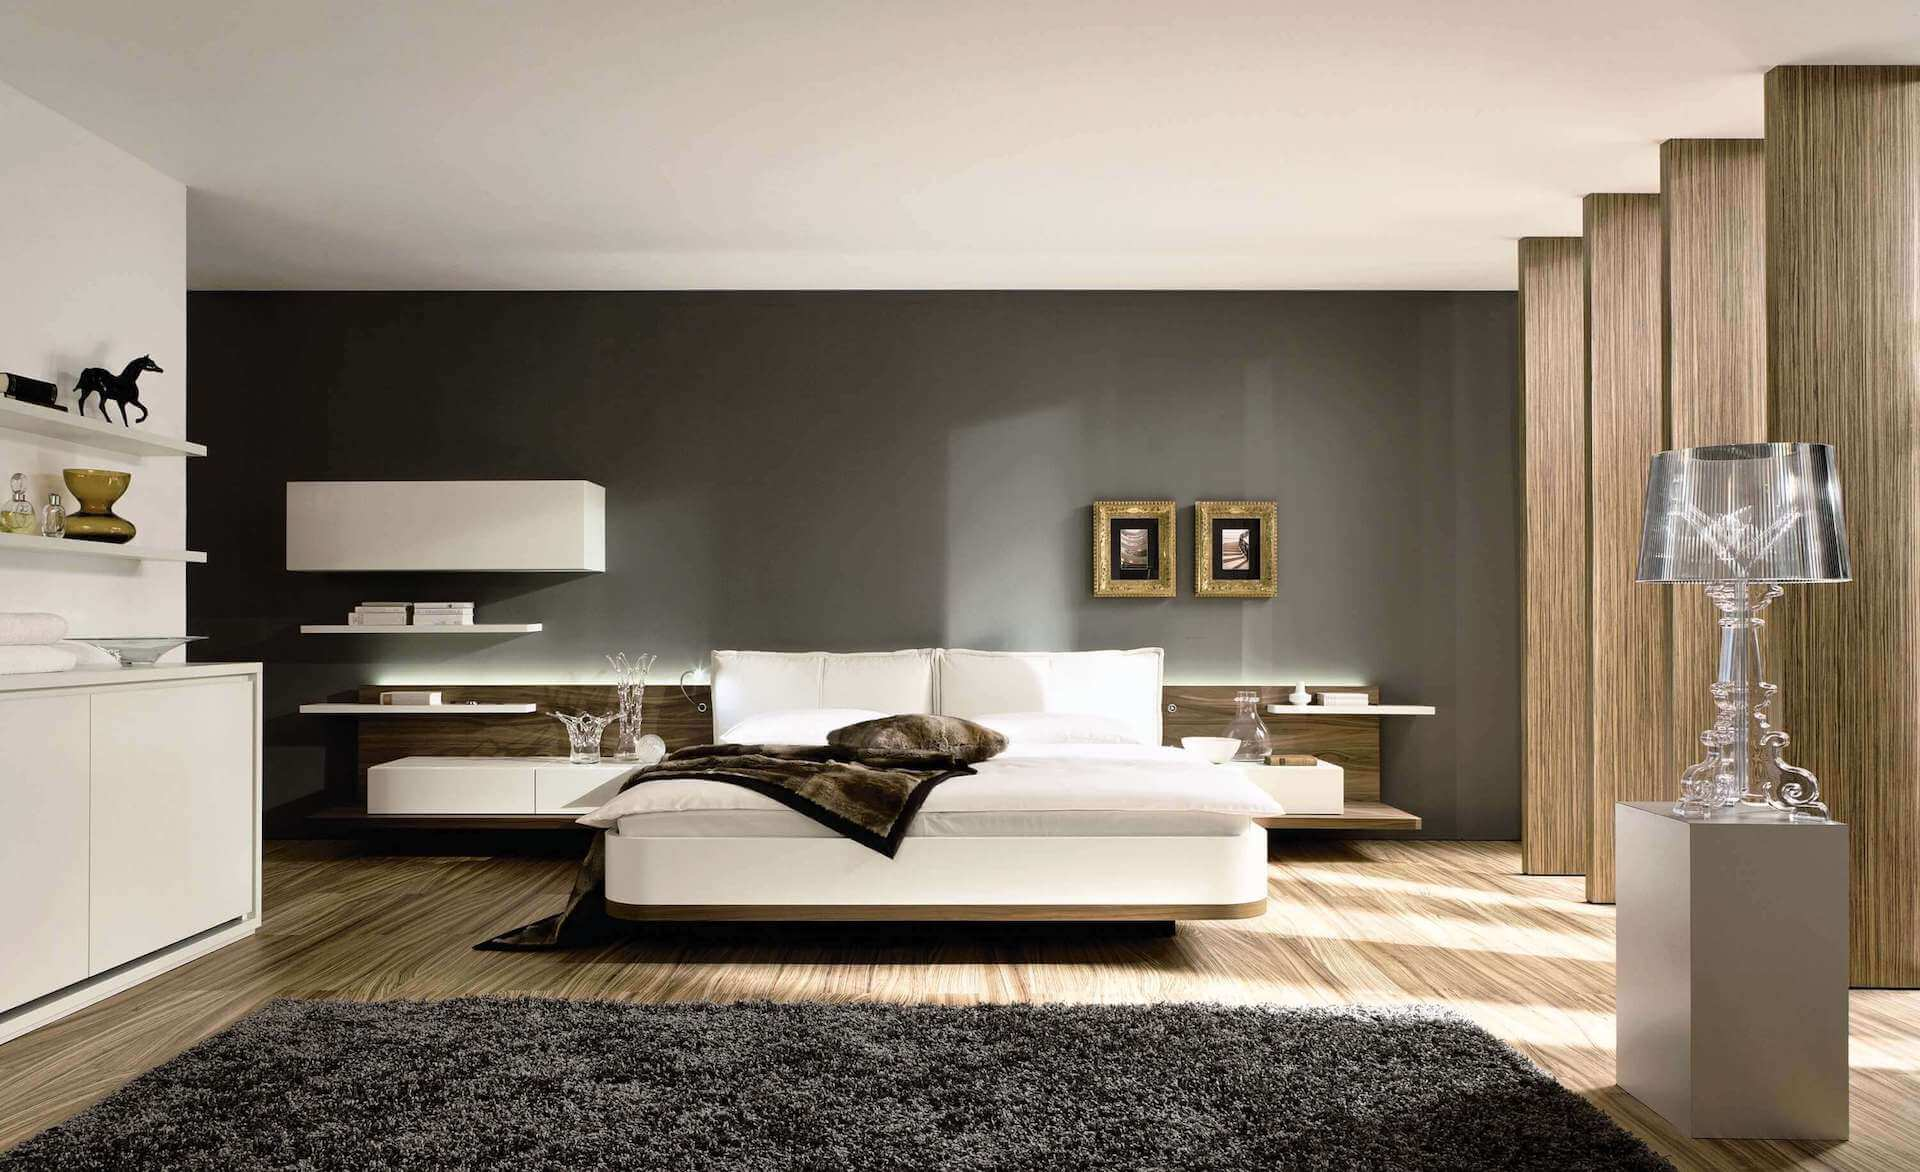 bedroom-with-awesome-modern-design-with-white-bed-and-cover-also-black-blanked-and-fur-rug-also-drawers.jpg